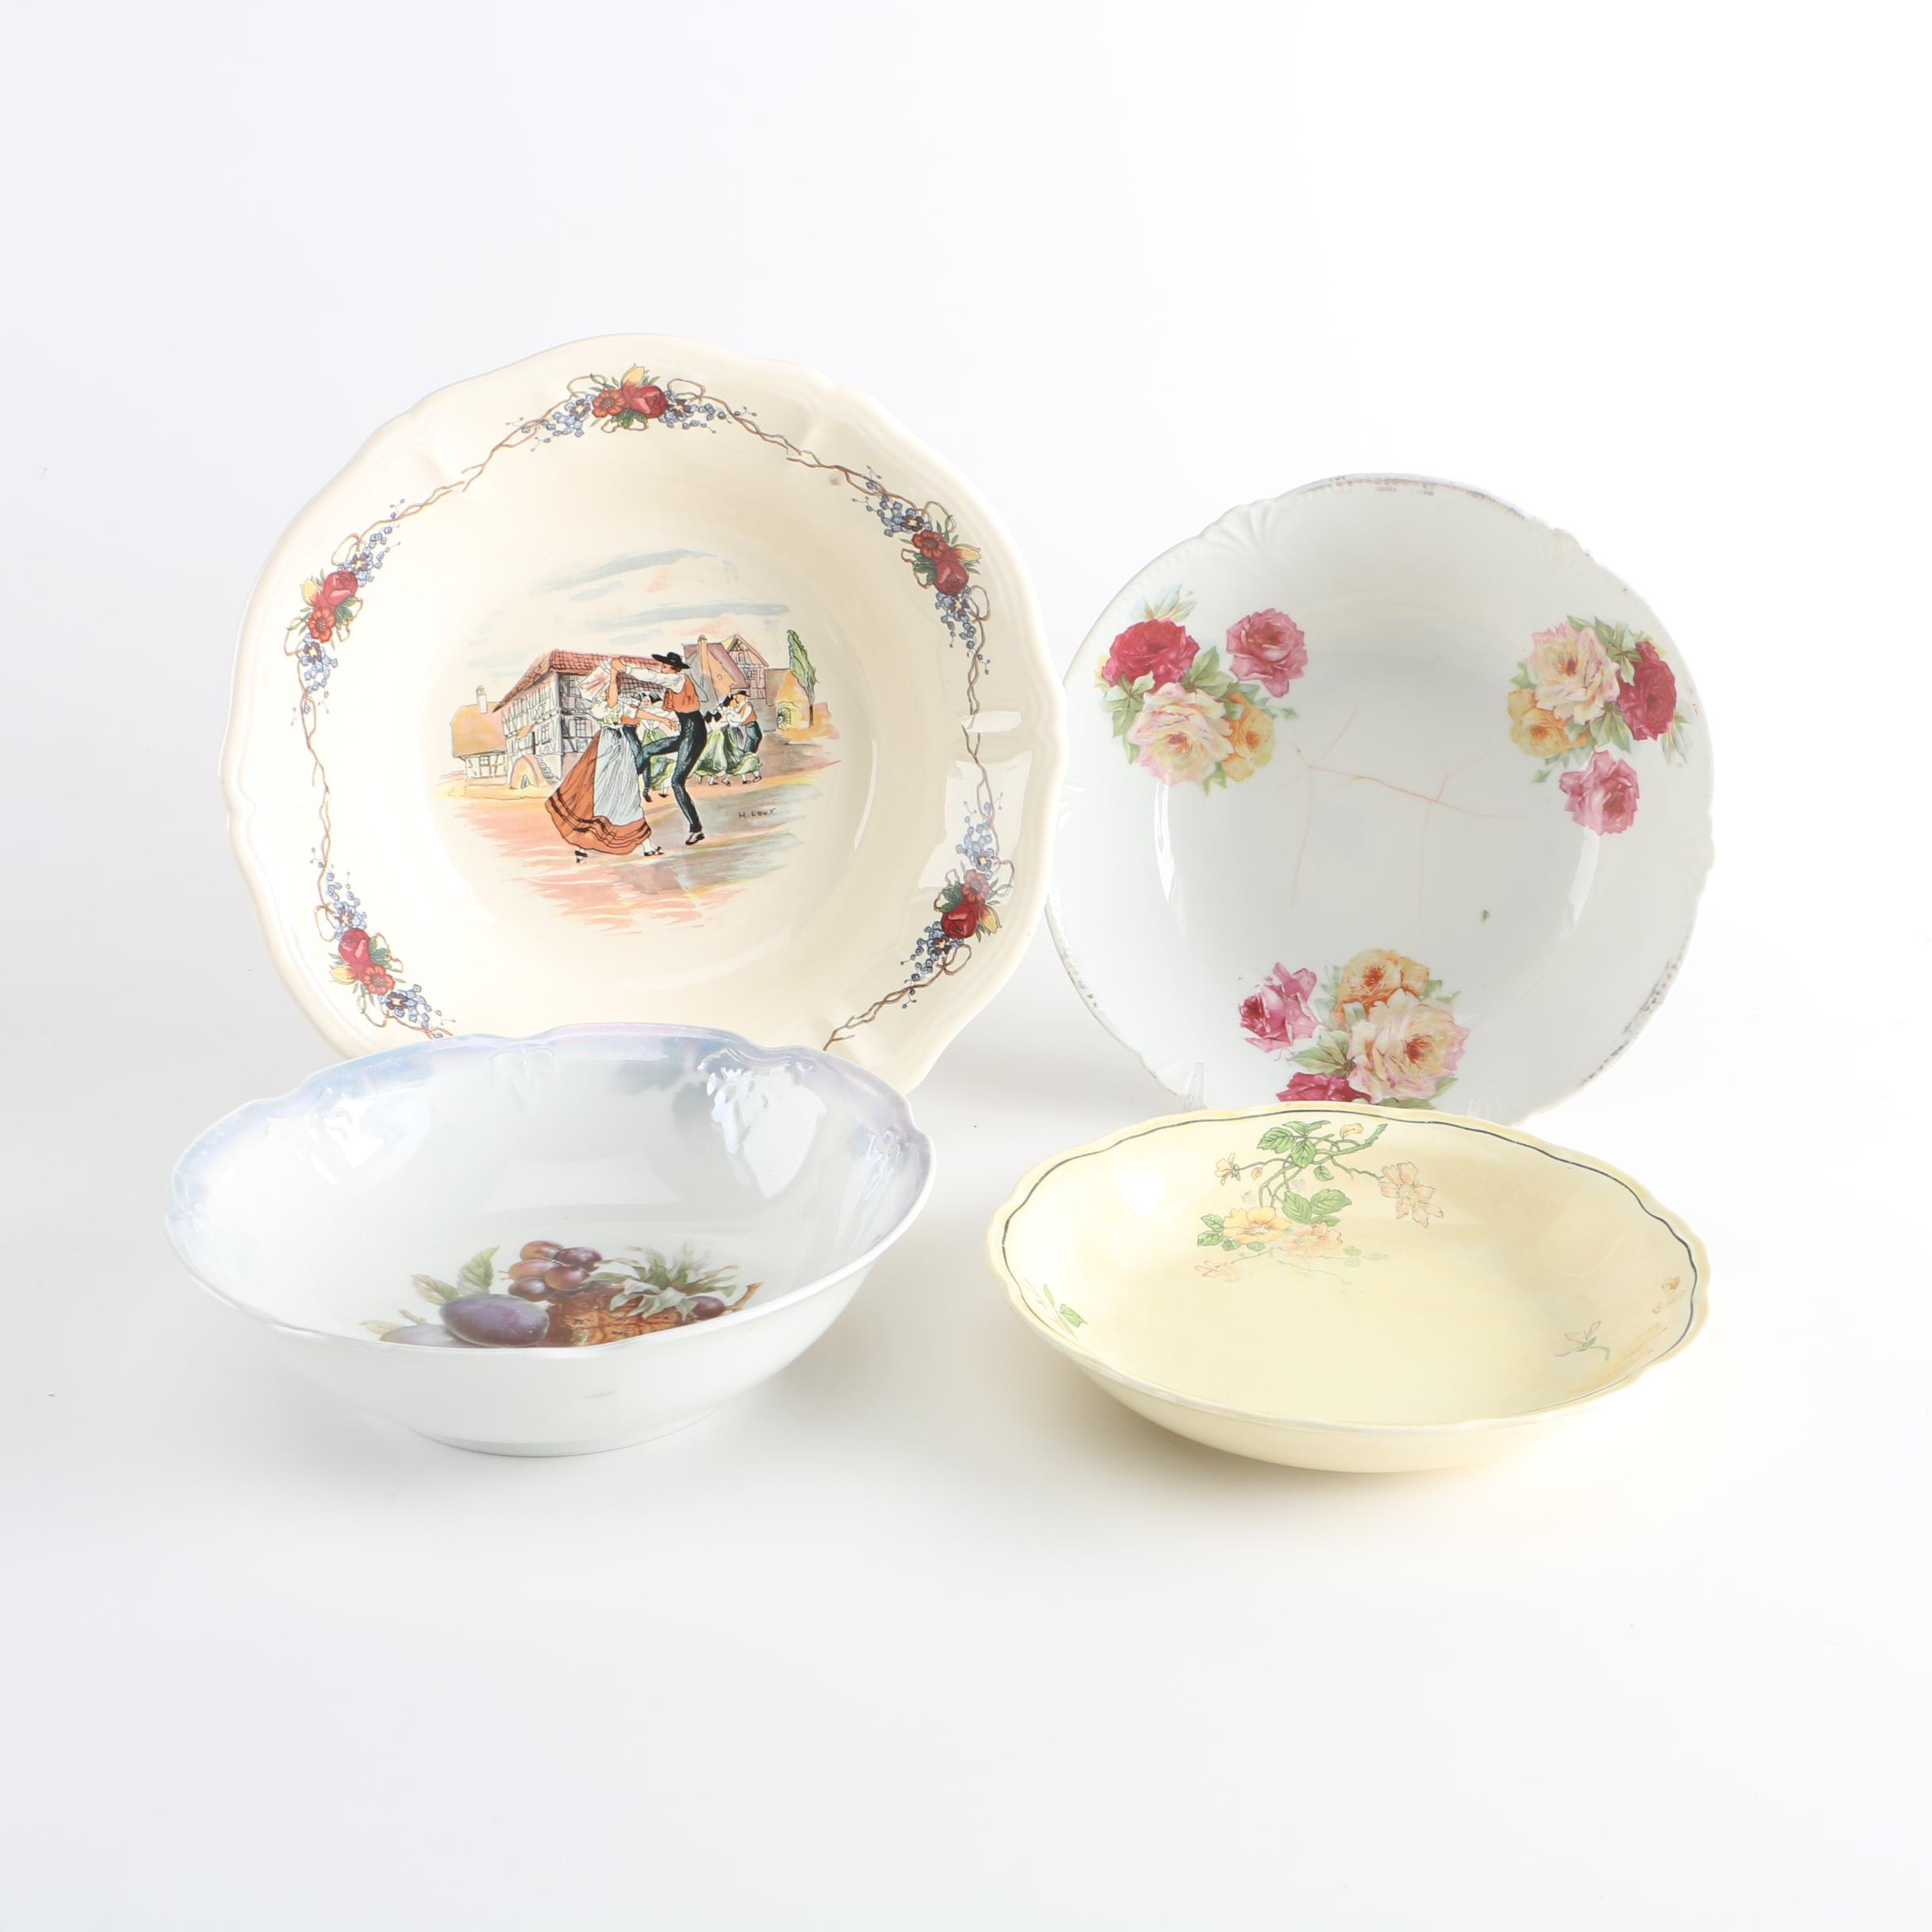 Floral and Fruit Bowls